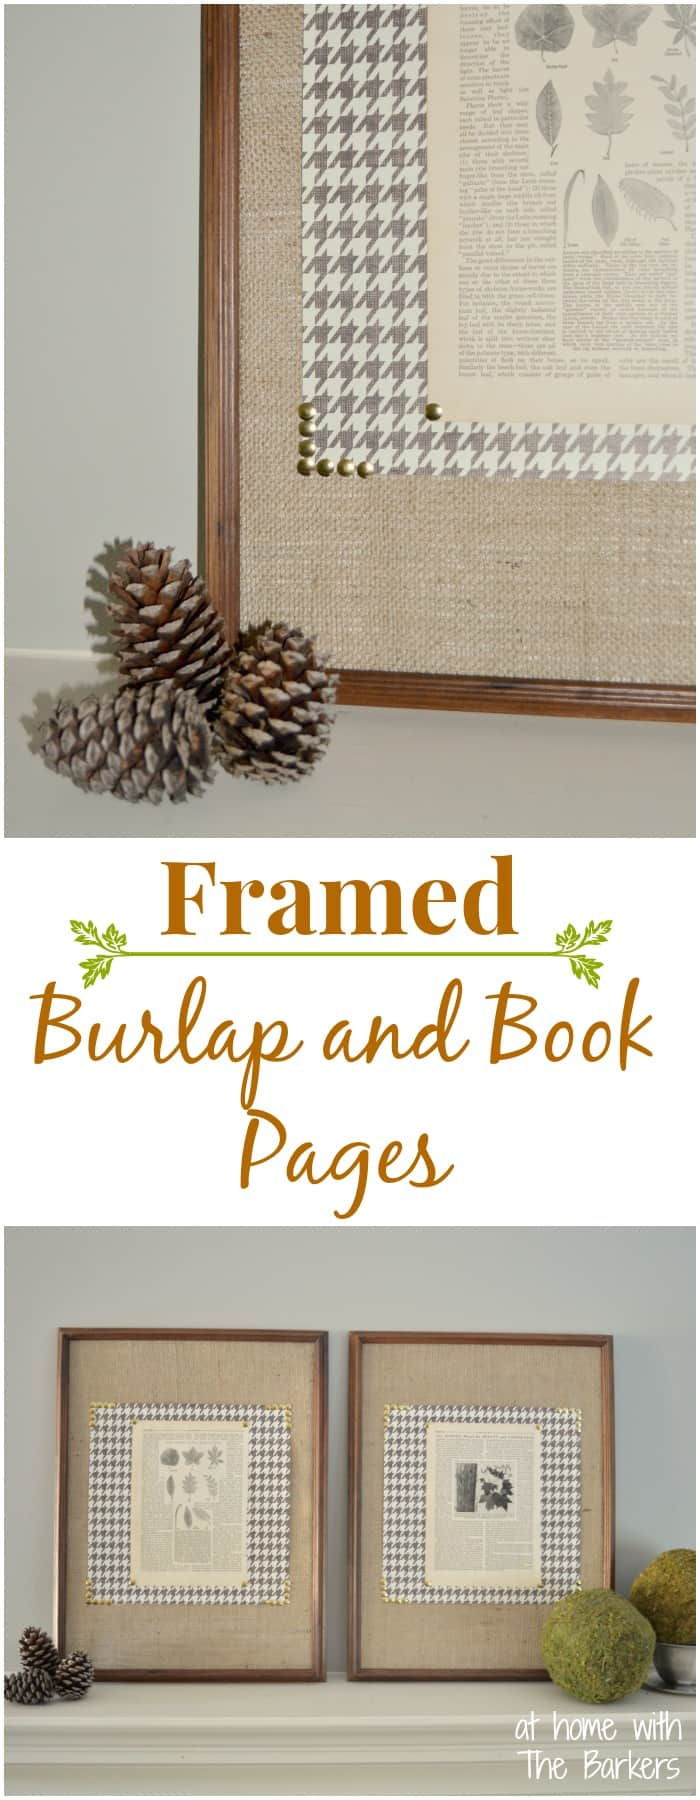 Framed Burlap and Book Pages- Fall Art